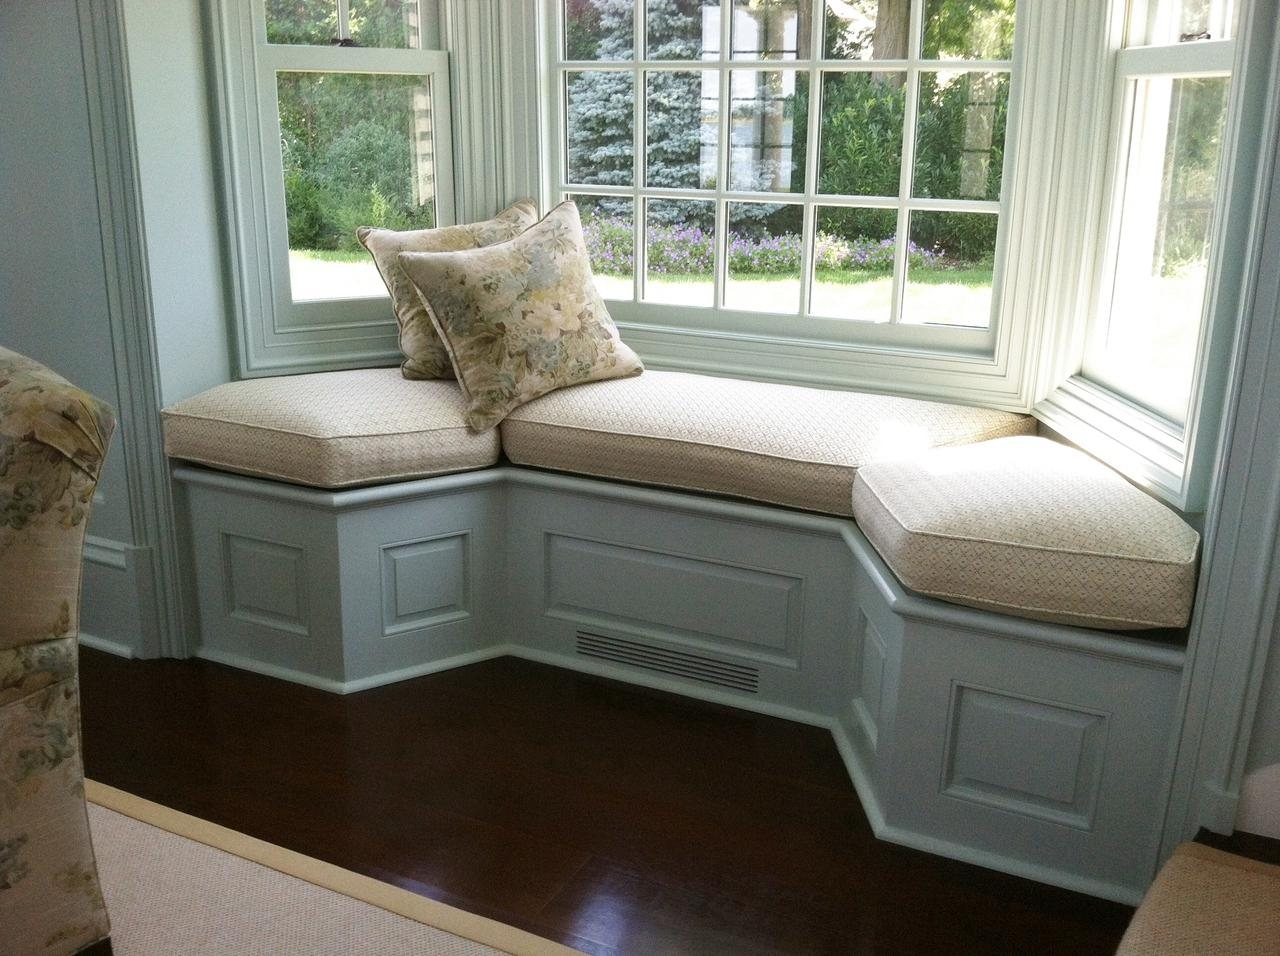 Sofas Center : Surprising Bay Window Sofa Images Concept For Inside Sofas For Bay Window (Image 19 of 20)